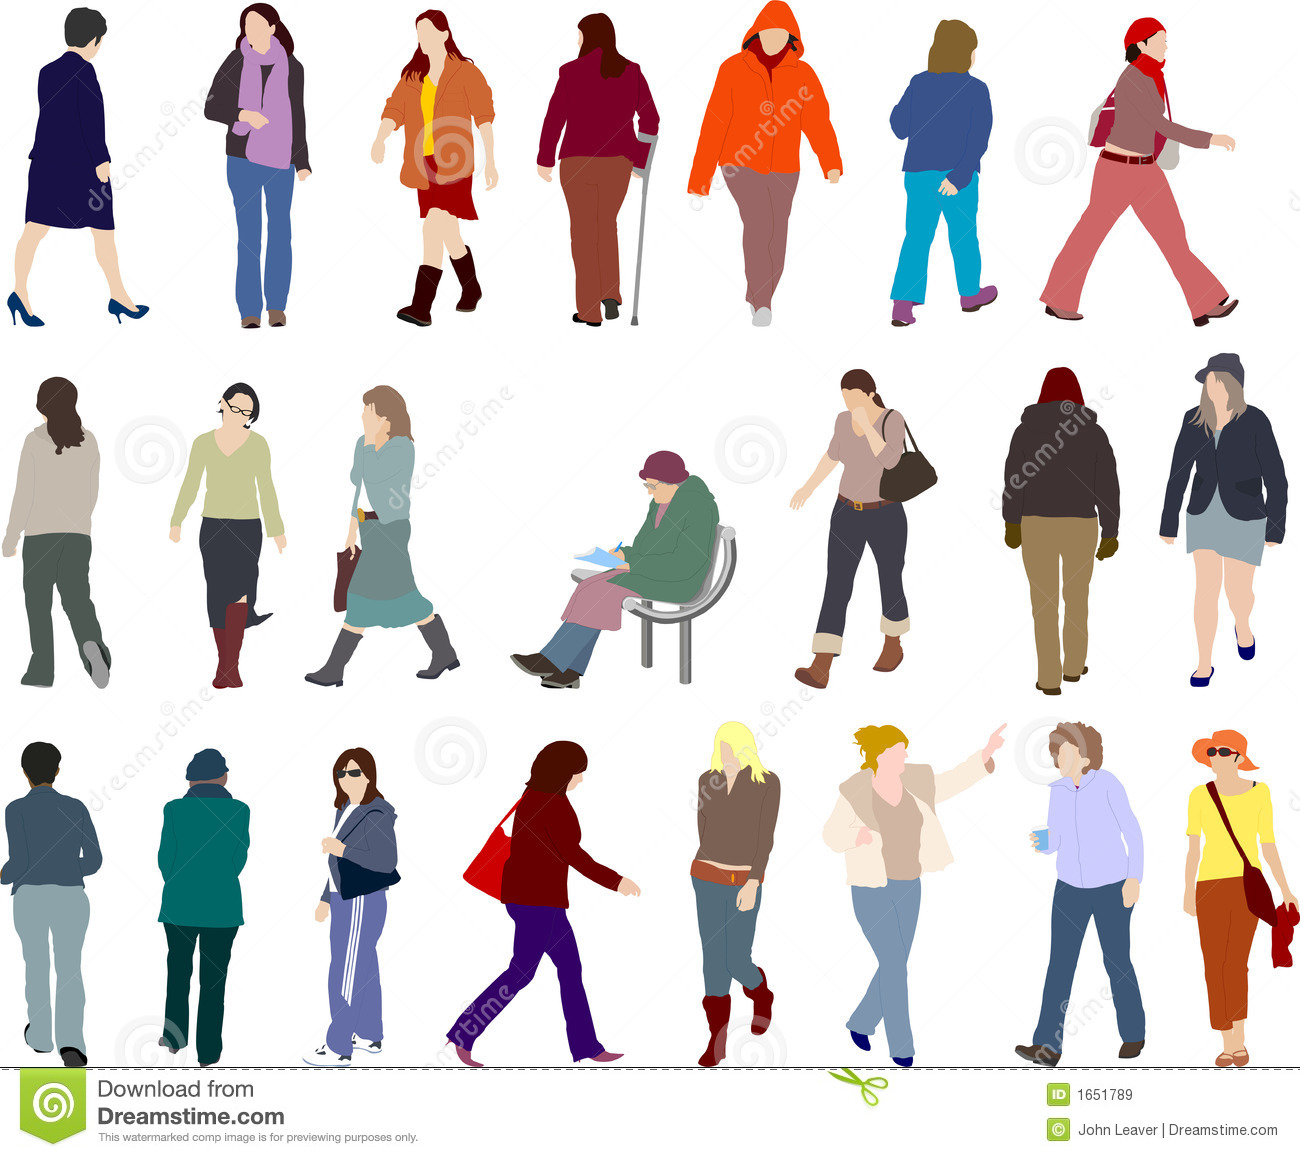 People Illustrations Royalty Free Stock Images - Image ...